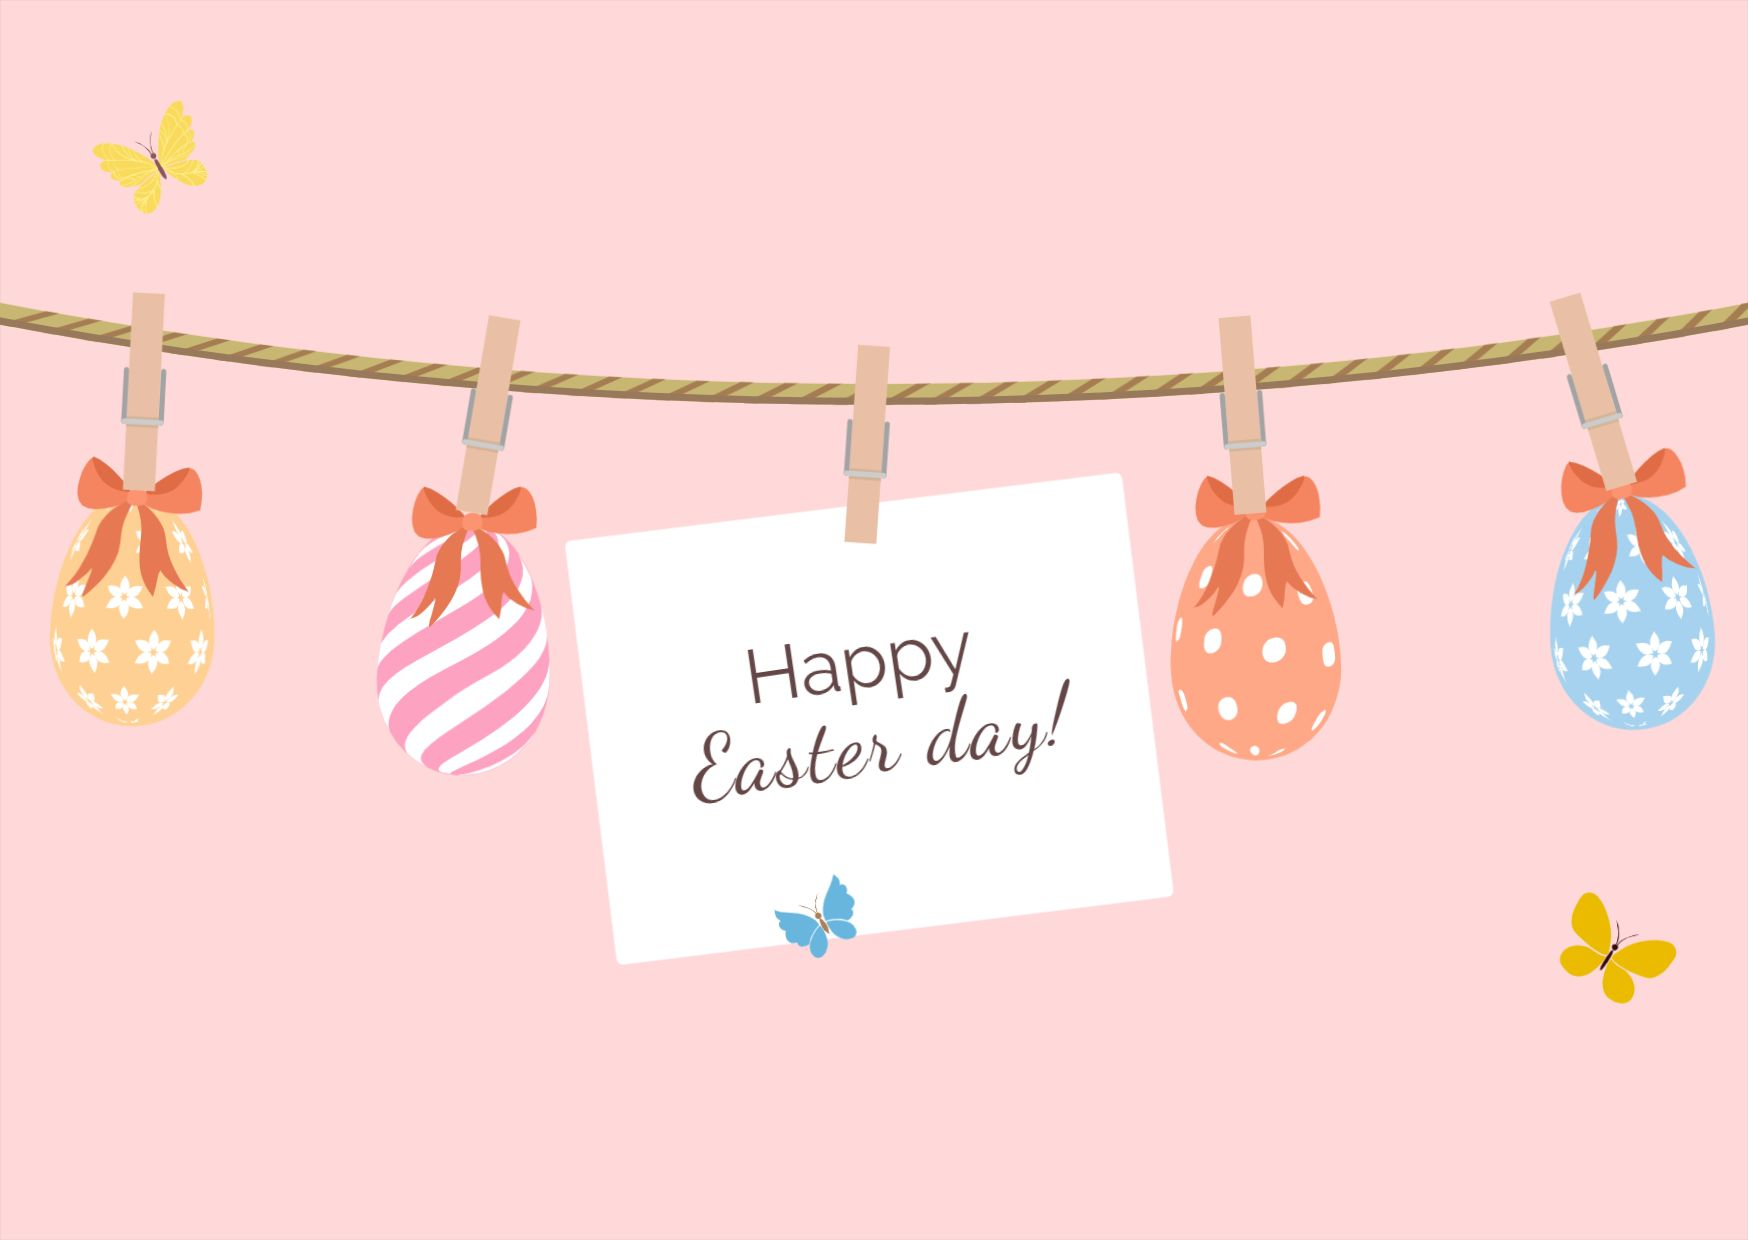 Happy Easter Day Greetings Template